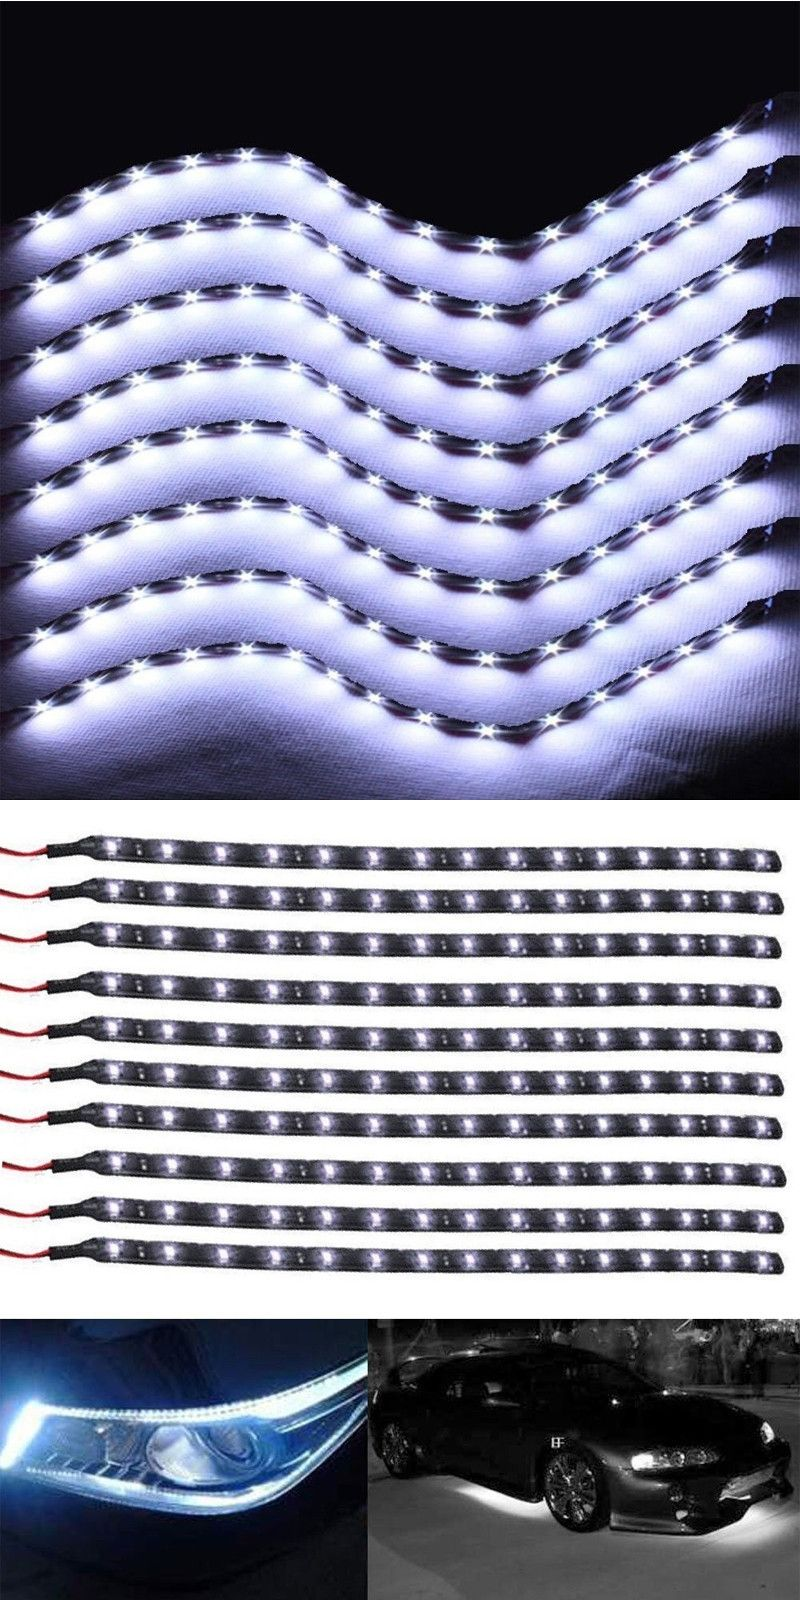 Useful Trendy 8pcs Auto 12v 15 Smd Led Light Bar Car Led Flexible Waterproof Strip Light Car Decor Lamps White Led Light Bars Car Decor Strip Lighting